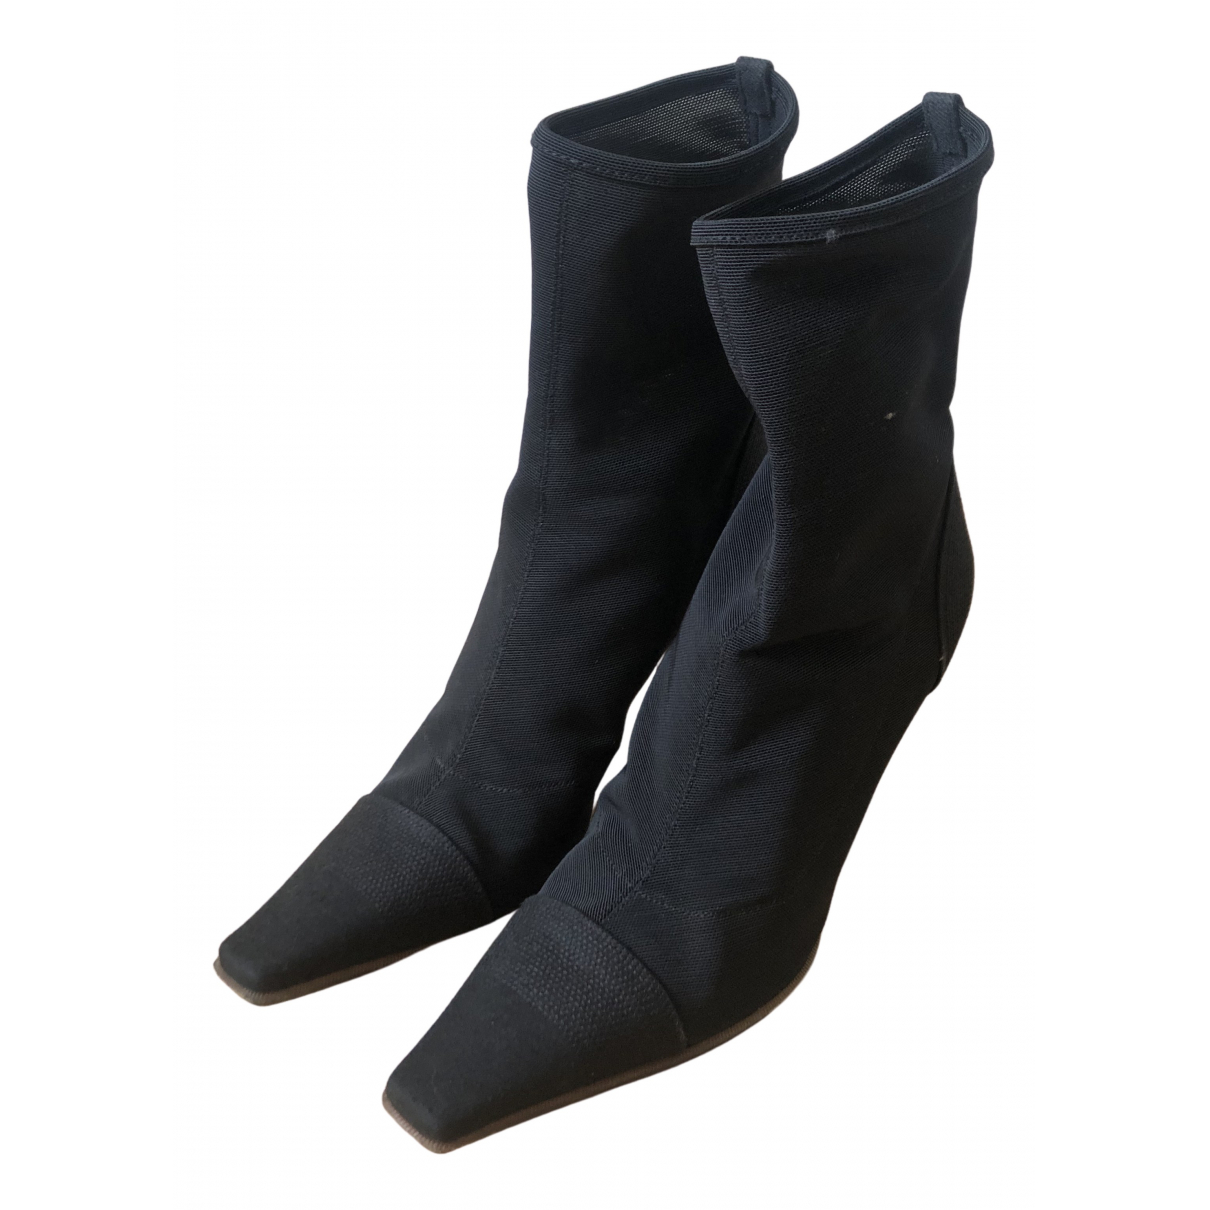 Sergio Rossi N Black Leather Boots for Women 36 EU